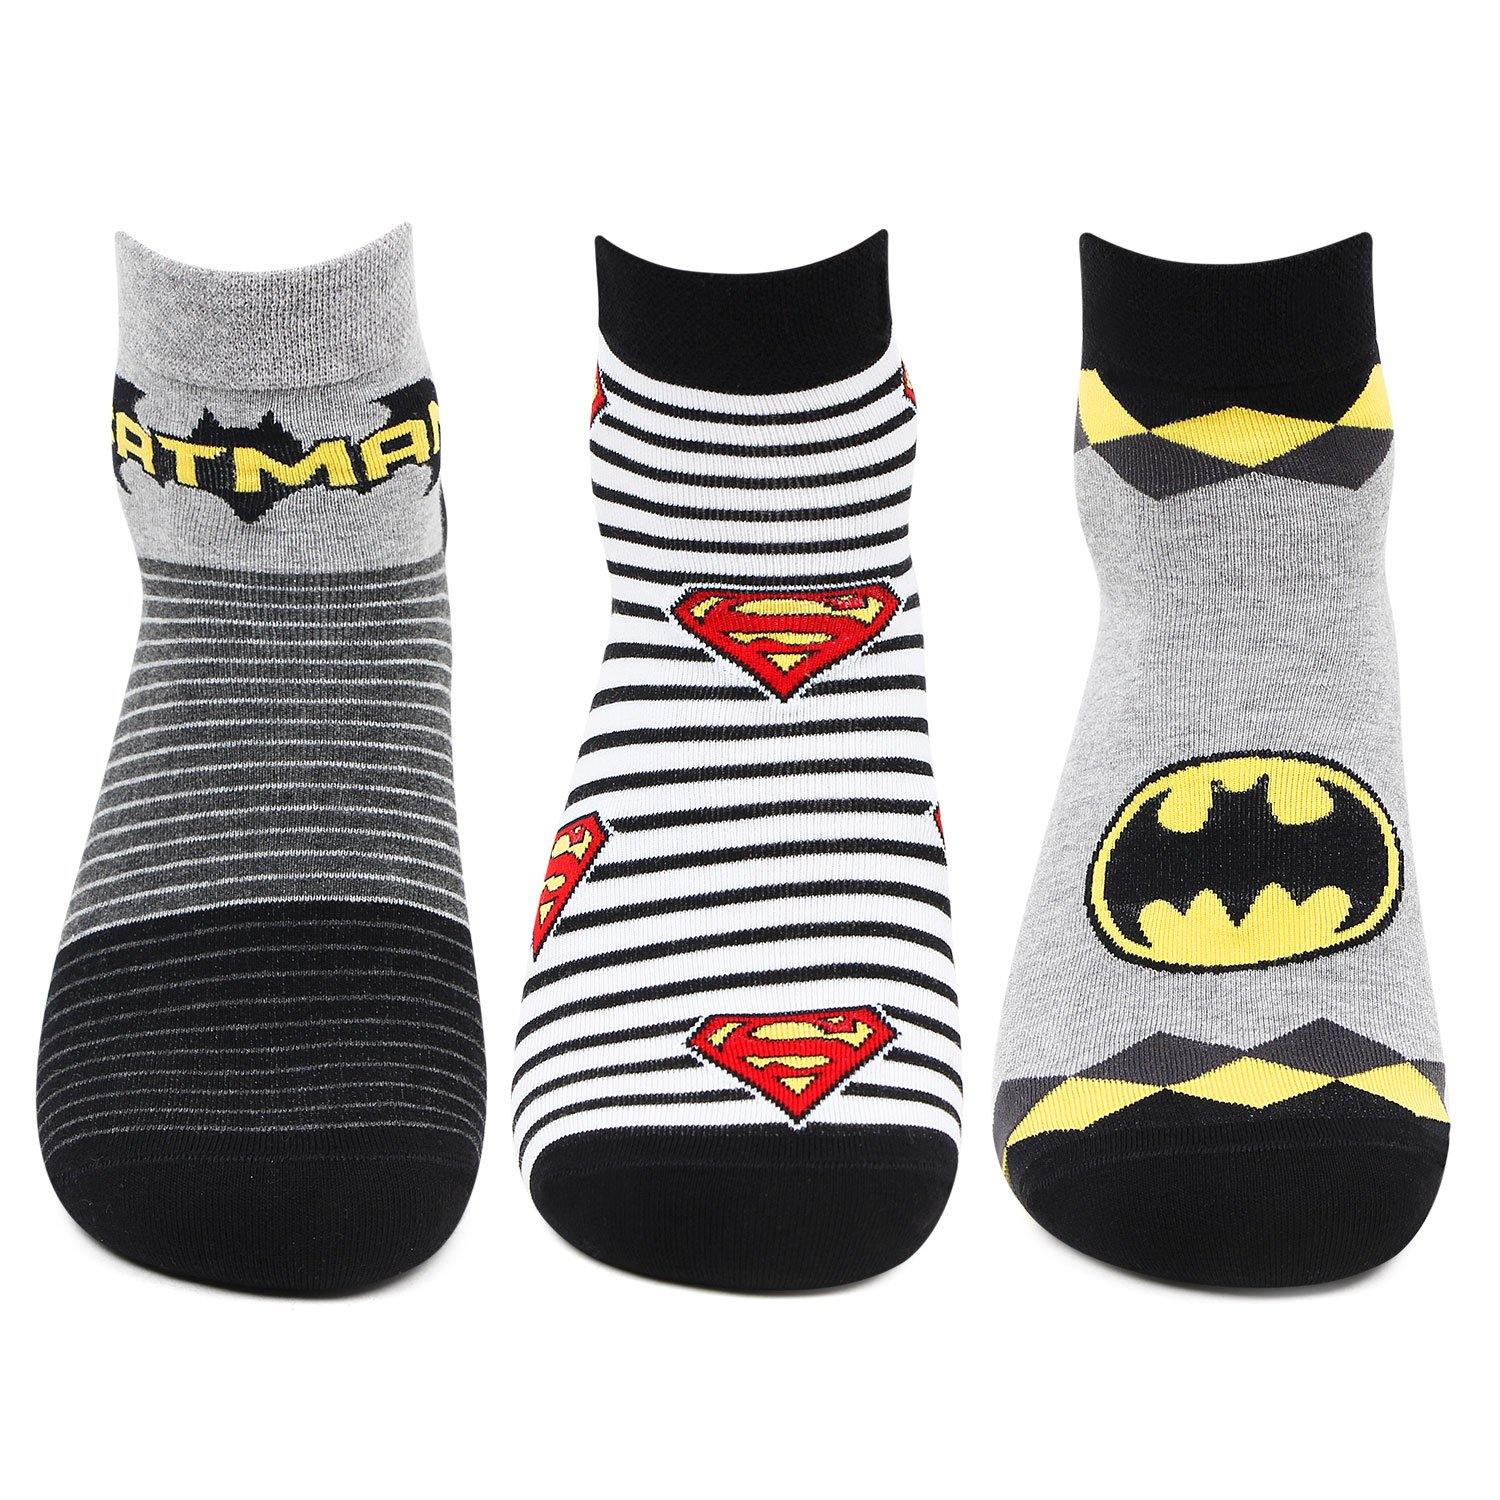 Superman Batman Ankle Socks for Men- Pack of 3